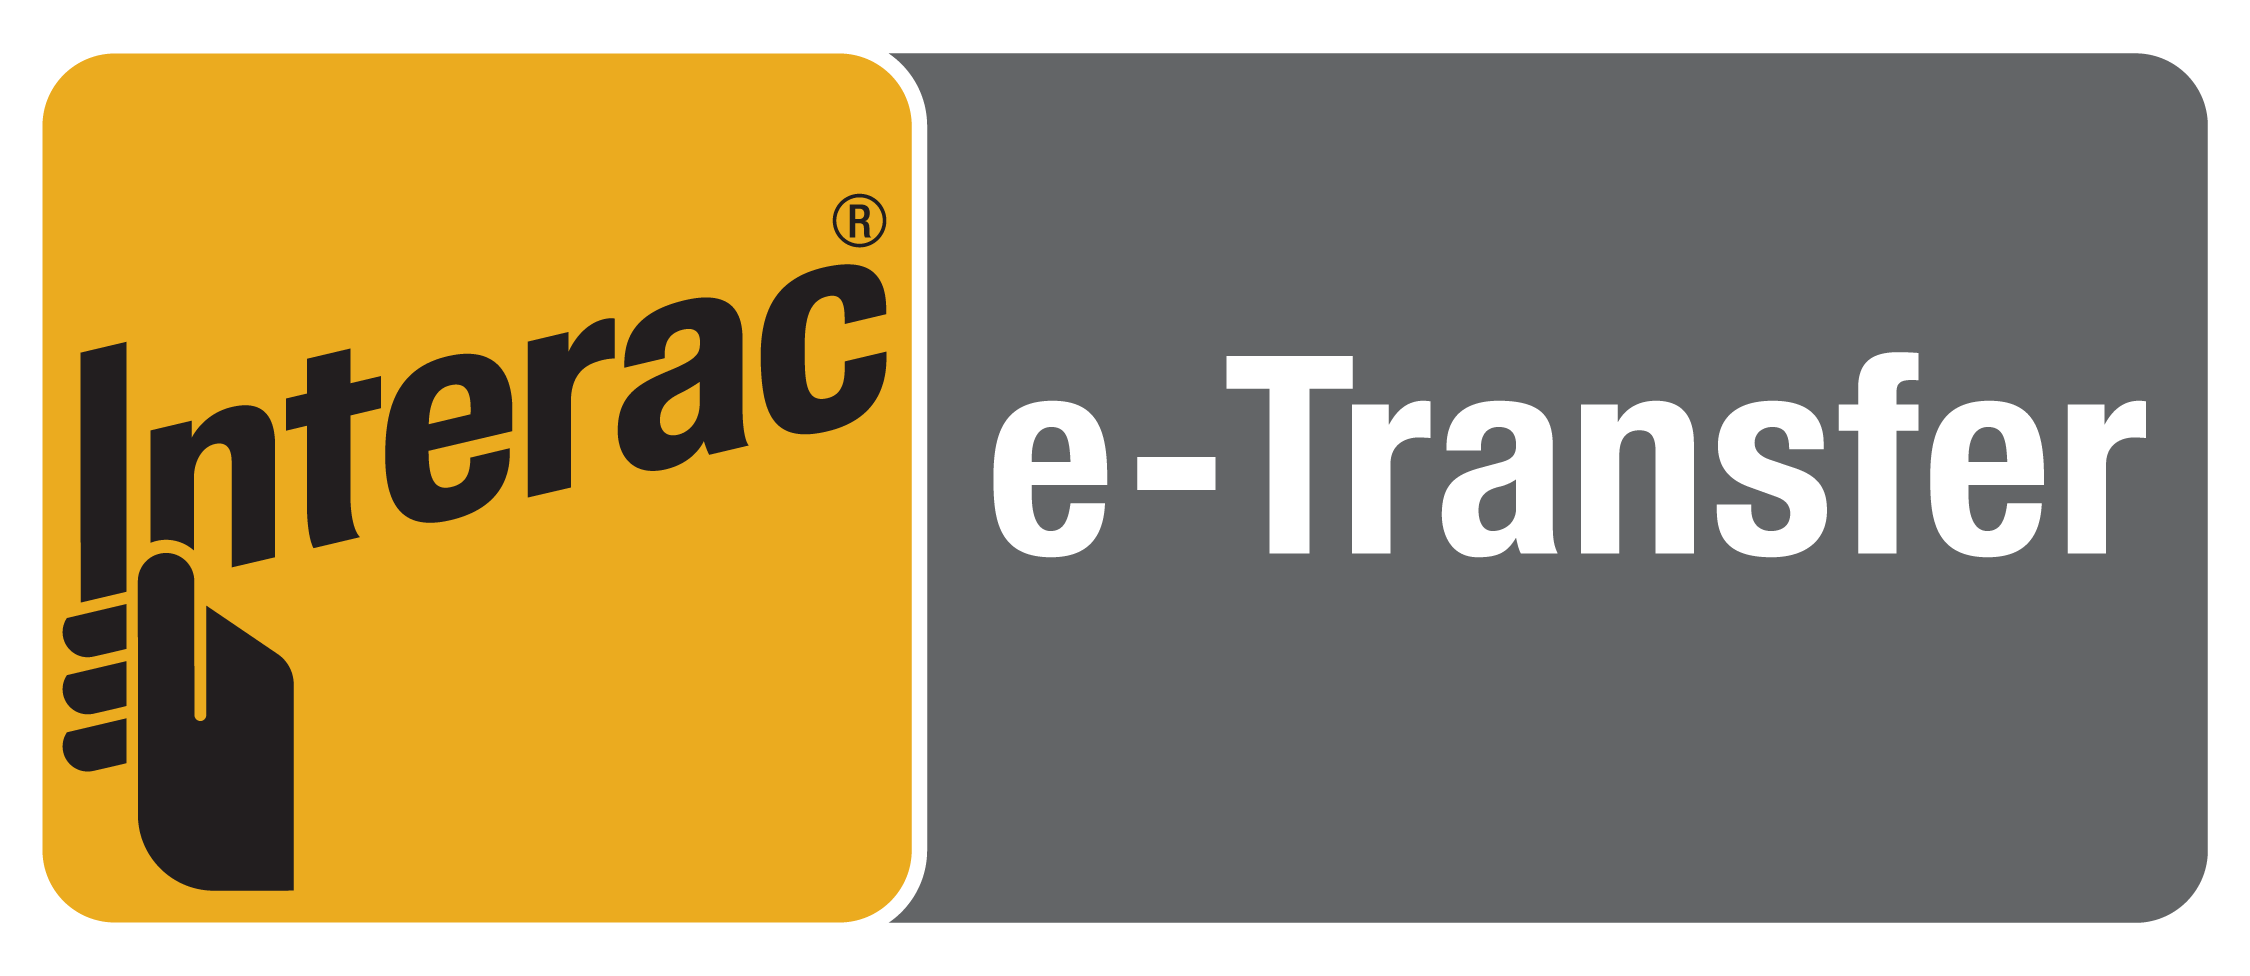 interac-email-money-transfer.png